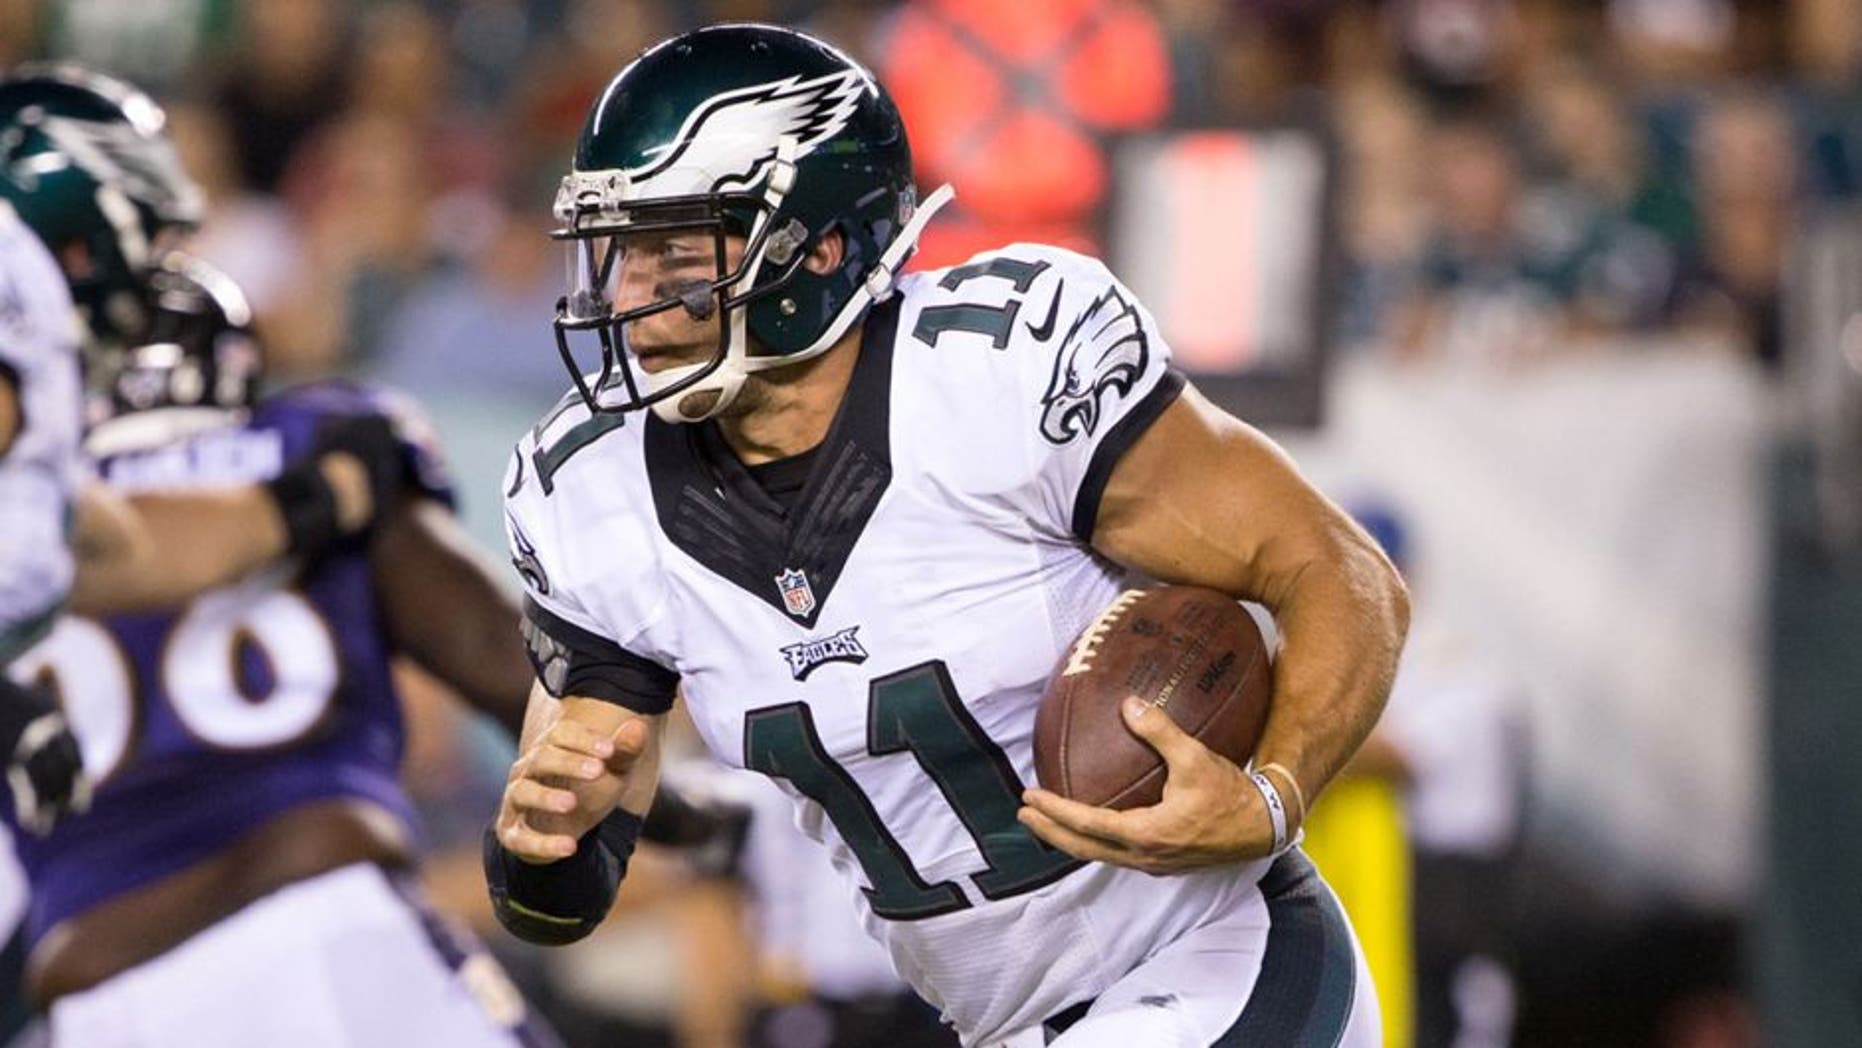 Aug 22, 2015; Philadelphia, PA, USA; Philadelphia Eagles quarterback Tim Tebow (11) runs with the ball against the Baltimore Ravens during the fourth quarter at Lincoln Financial Field. The Eagles won 40-17. Mandatory Credit: Bill Streicher-USA TODAY Sports